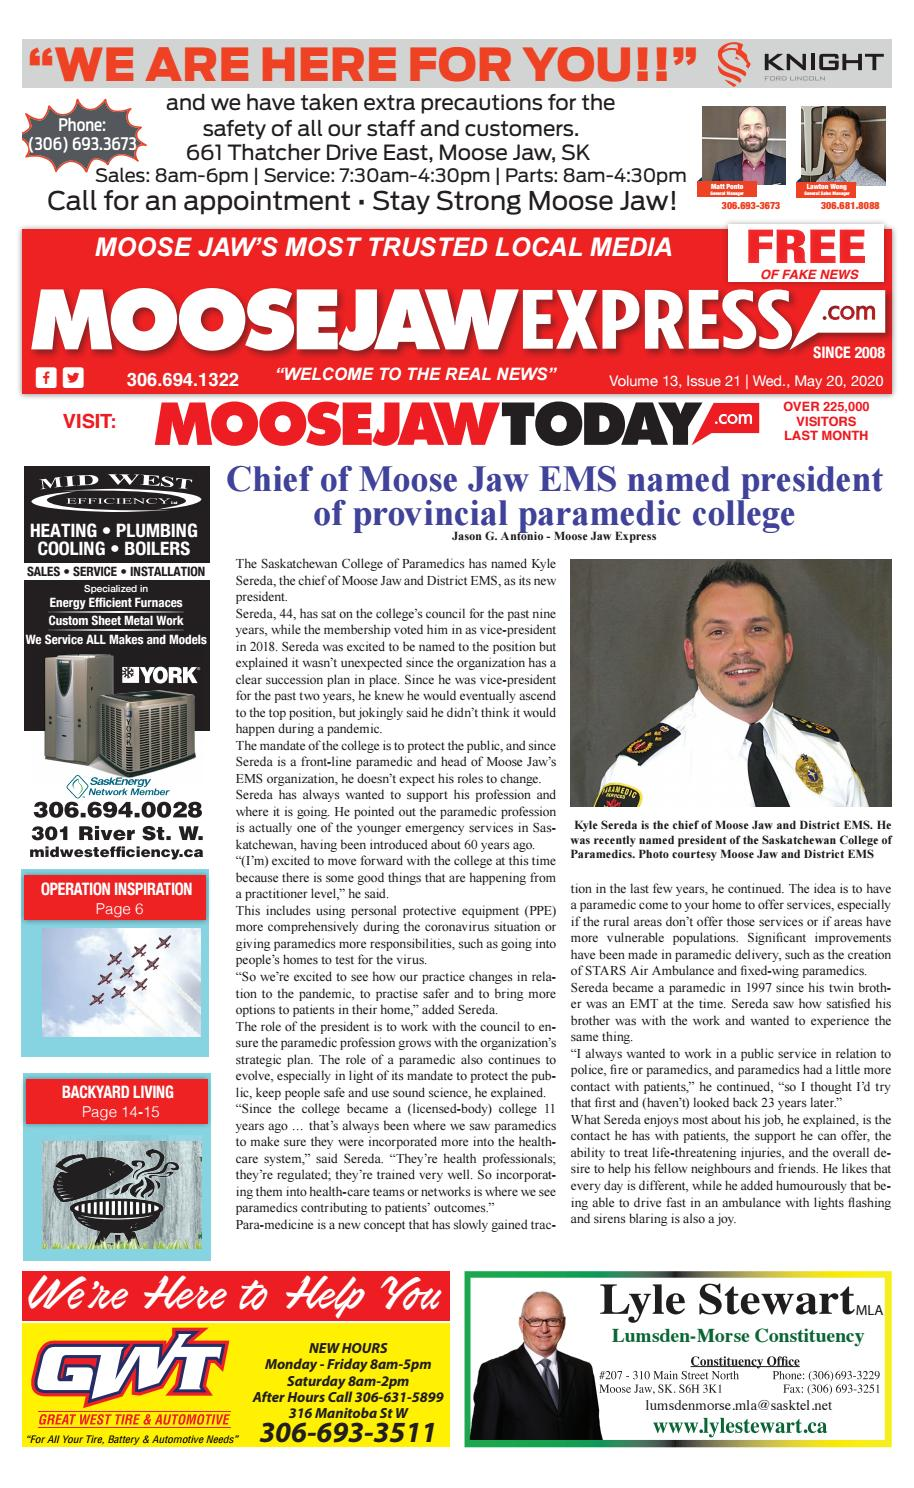 Moose Jaw Express May 20th 2020 By Moose Jaw Express Issuu